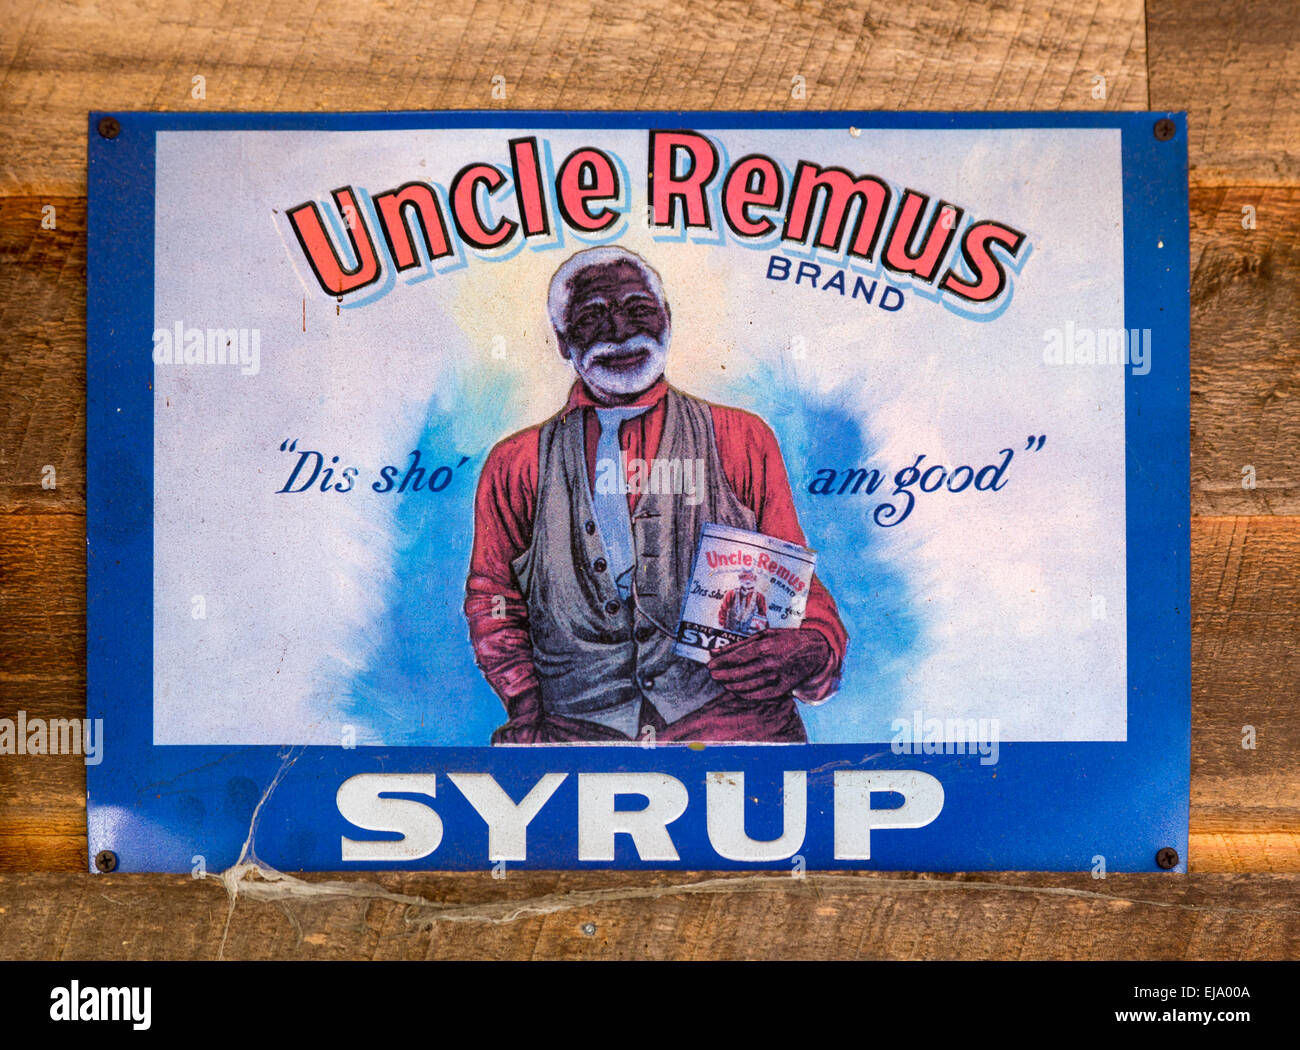 Wonderful image of Old Racist Advert For Uncle Remus Syrup Stock Photo Royalty Free  with #0A3F8F color and 1300x1050 pixels